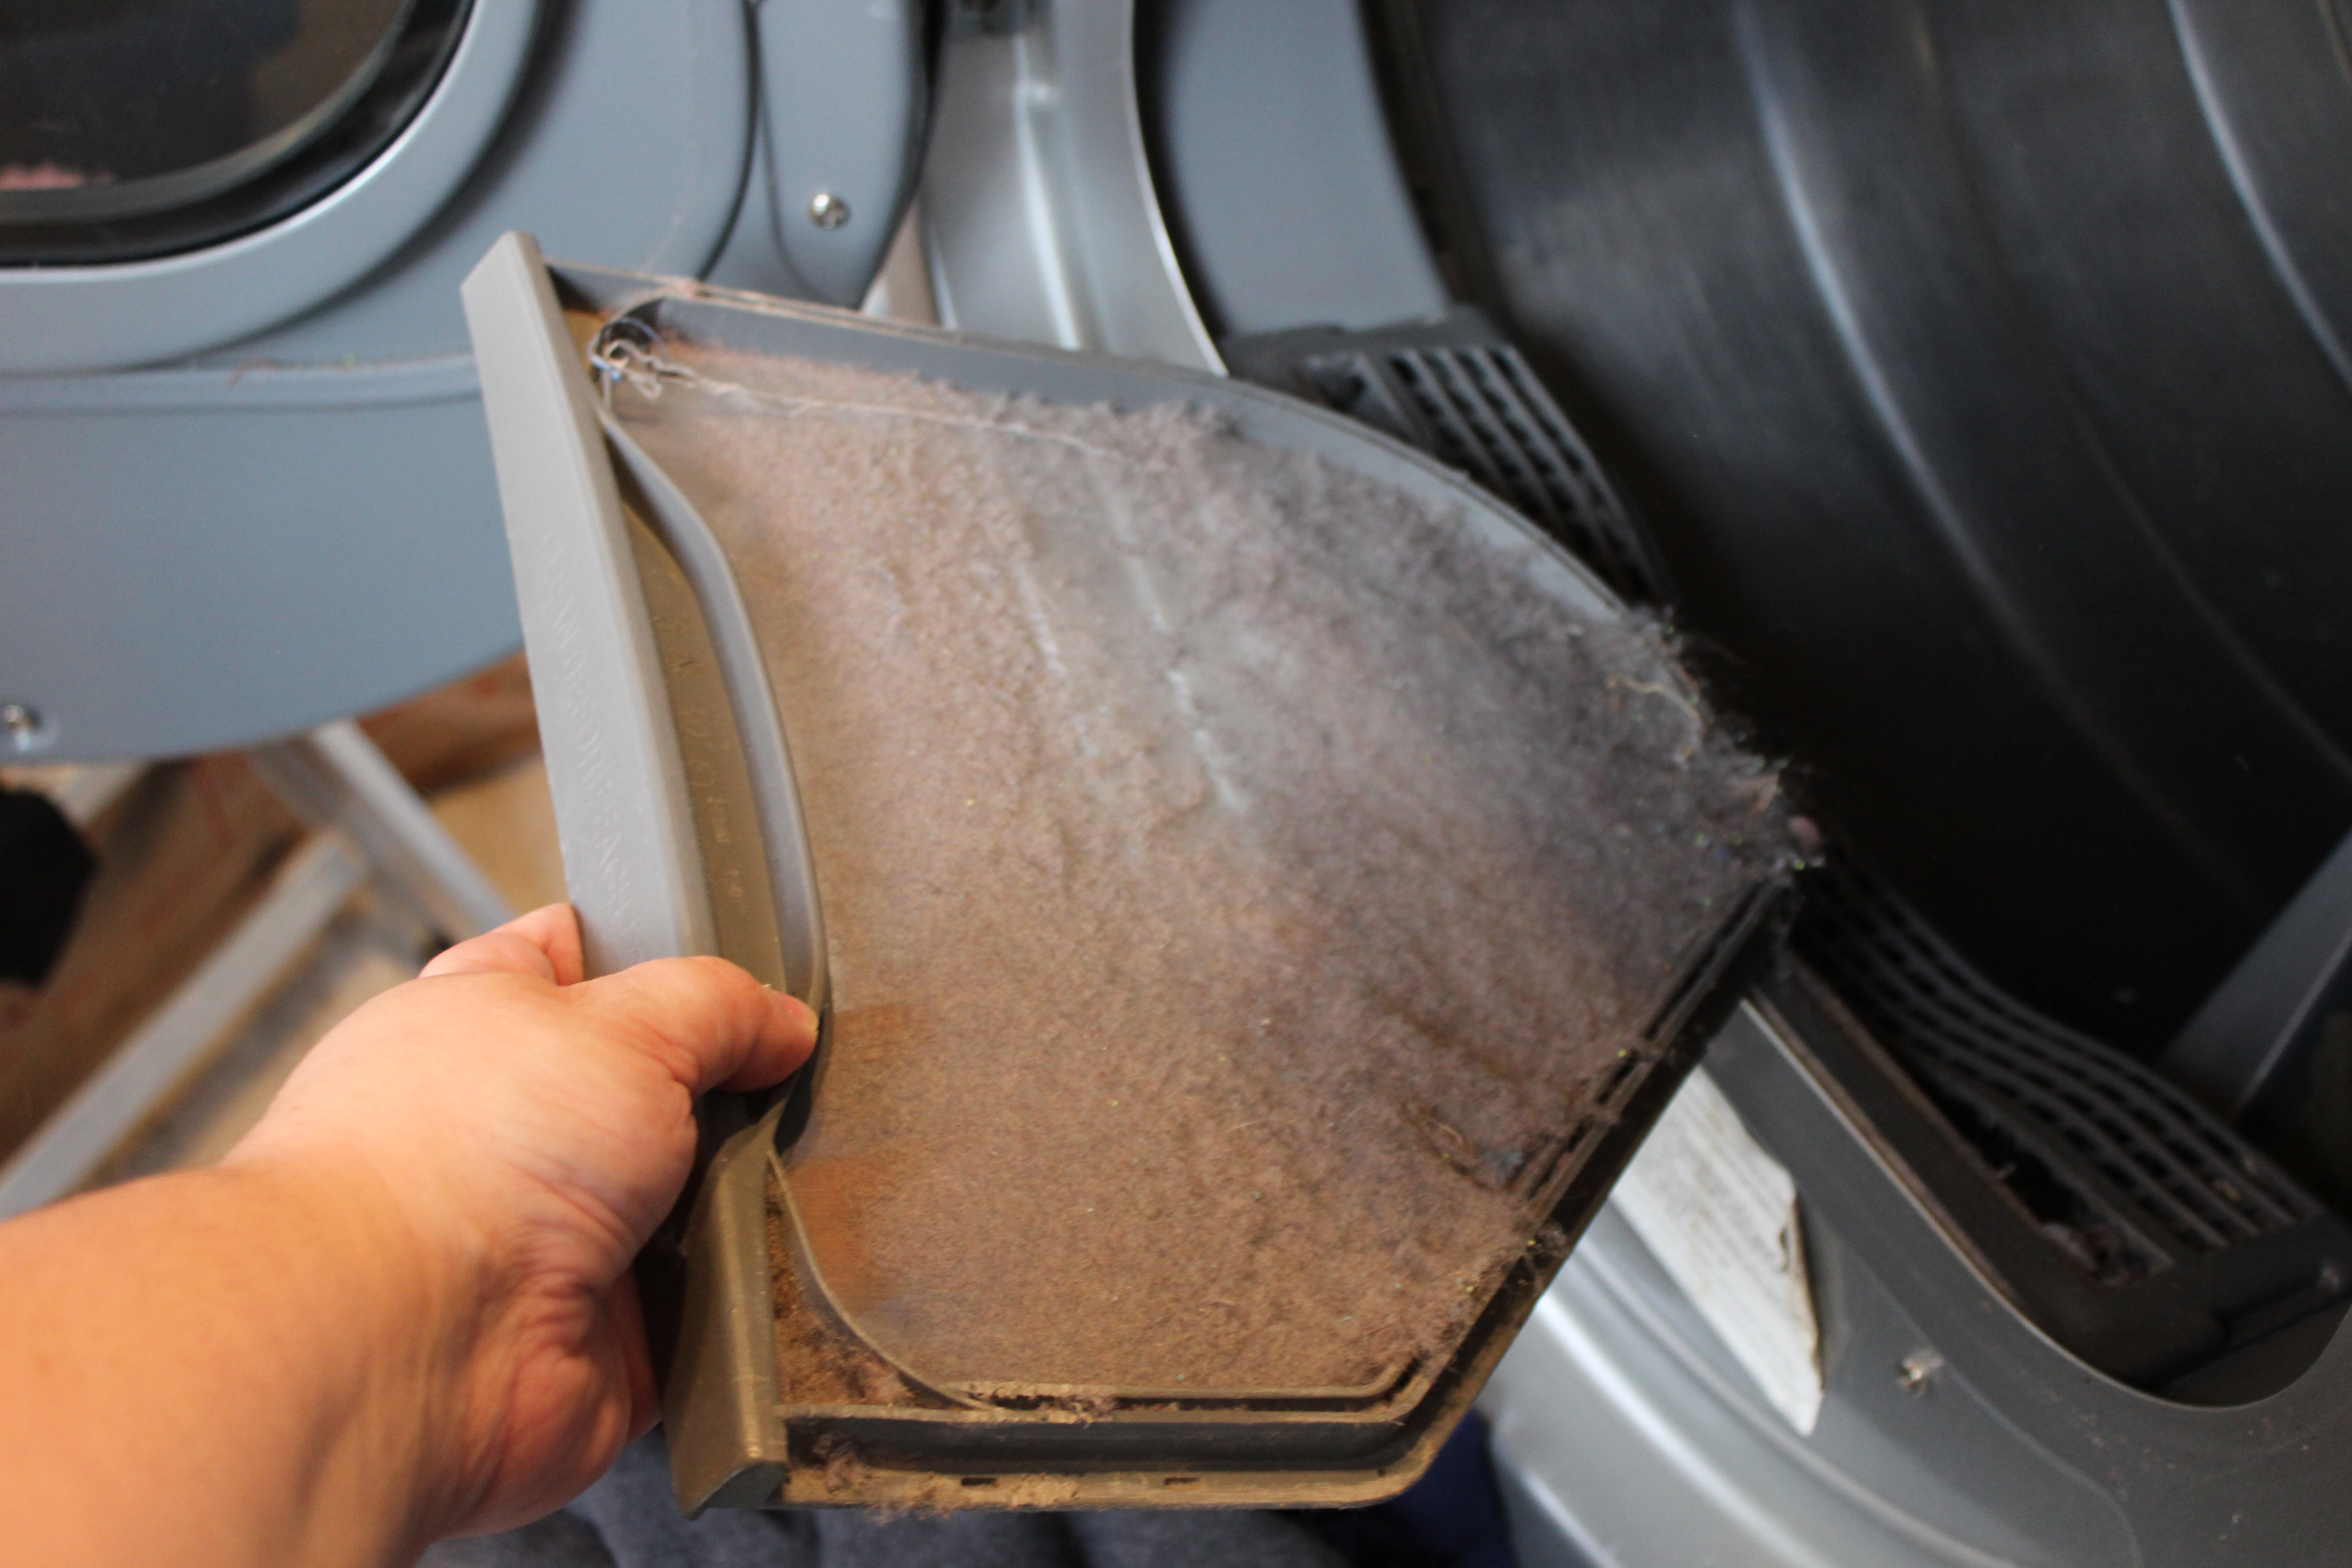 You don't clean the dryer filter